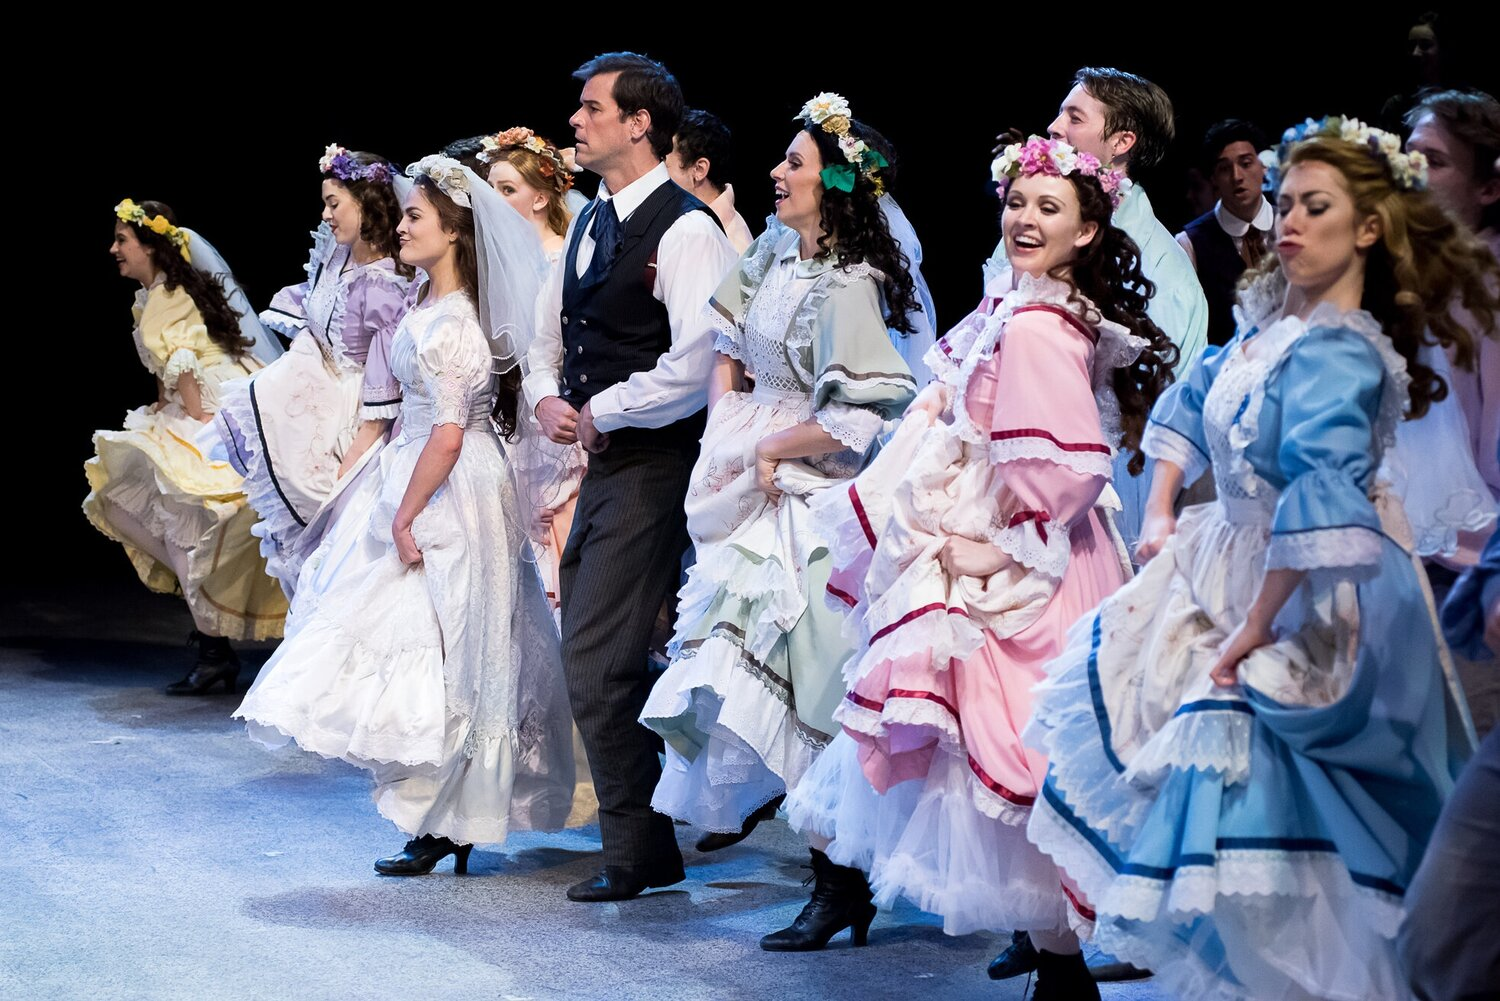 Wedding Veils- 7 Brides for 7 Brothers- Music Theatre Wichita 2017  Costume Design by Debbie Roberts. All designs by the seasonal staff of MTW. Photos courtesy of Christopher Clark and John Fritchman.